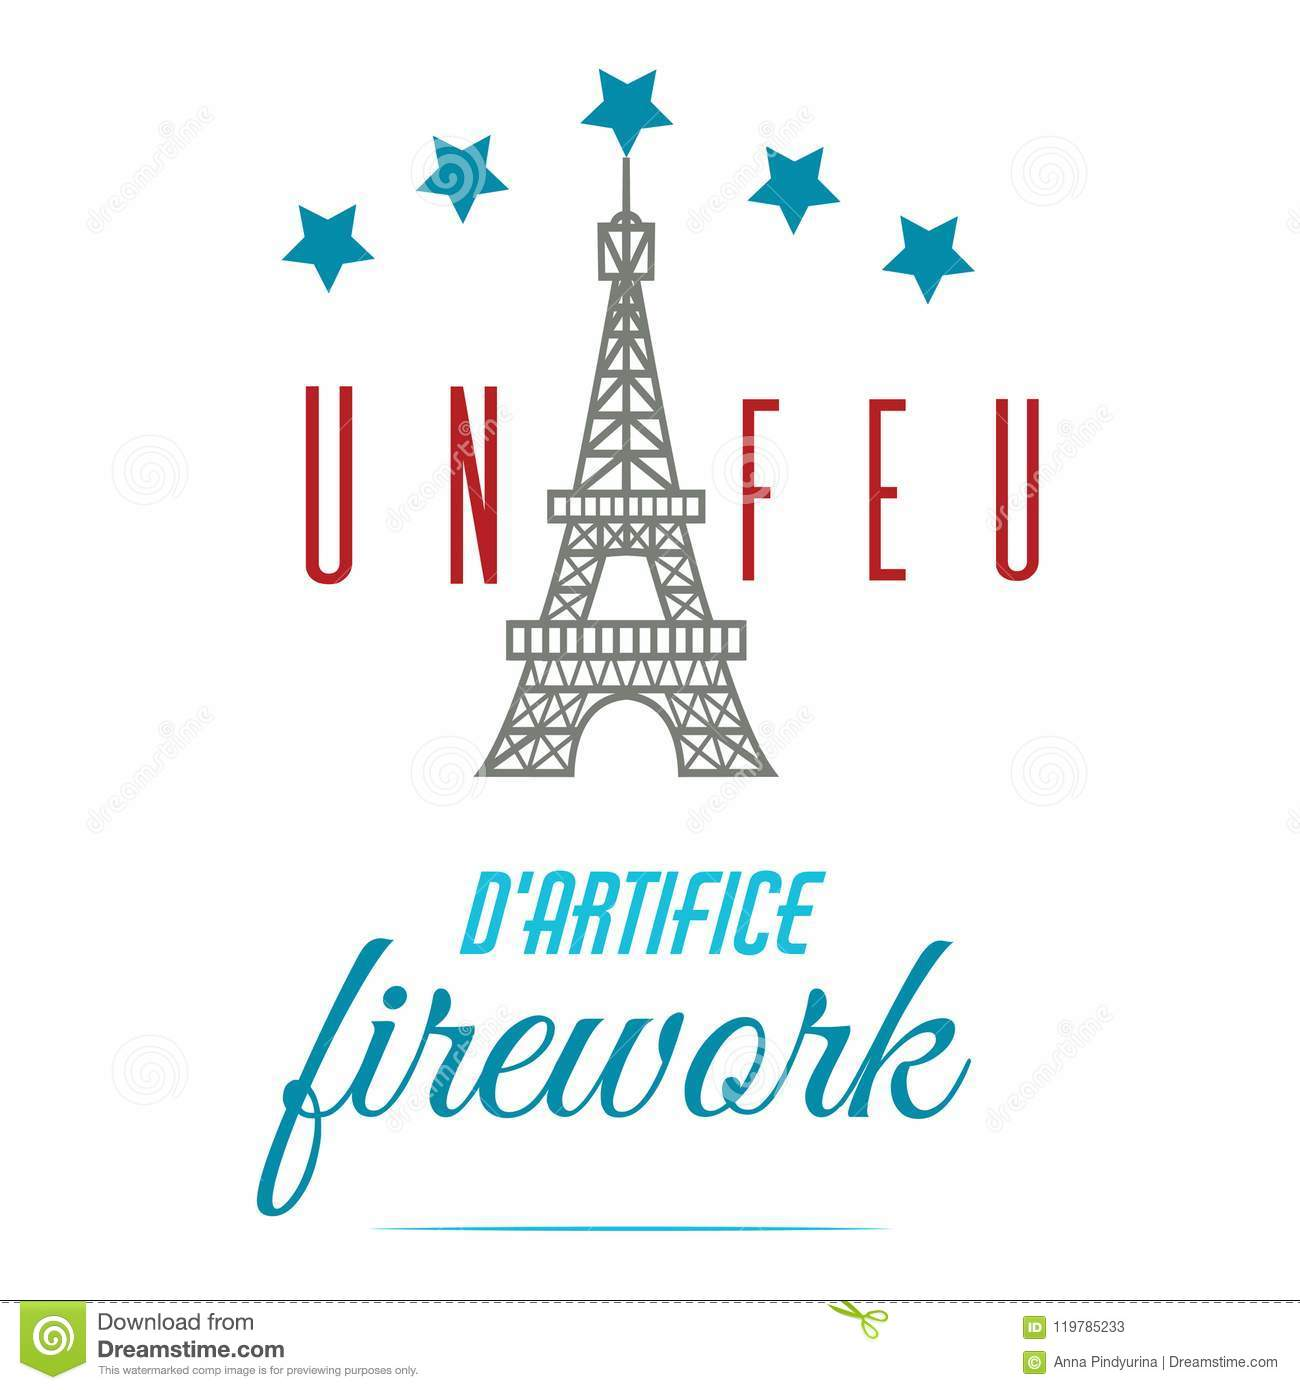 Happy Bastille Day Greetings Card Design 14th July Independence Day